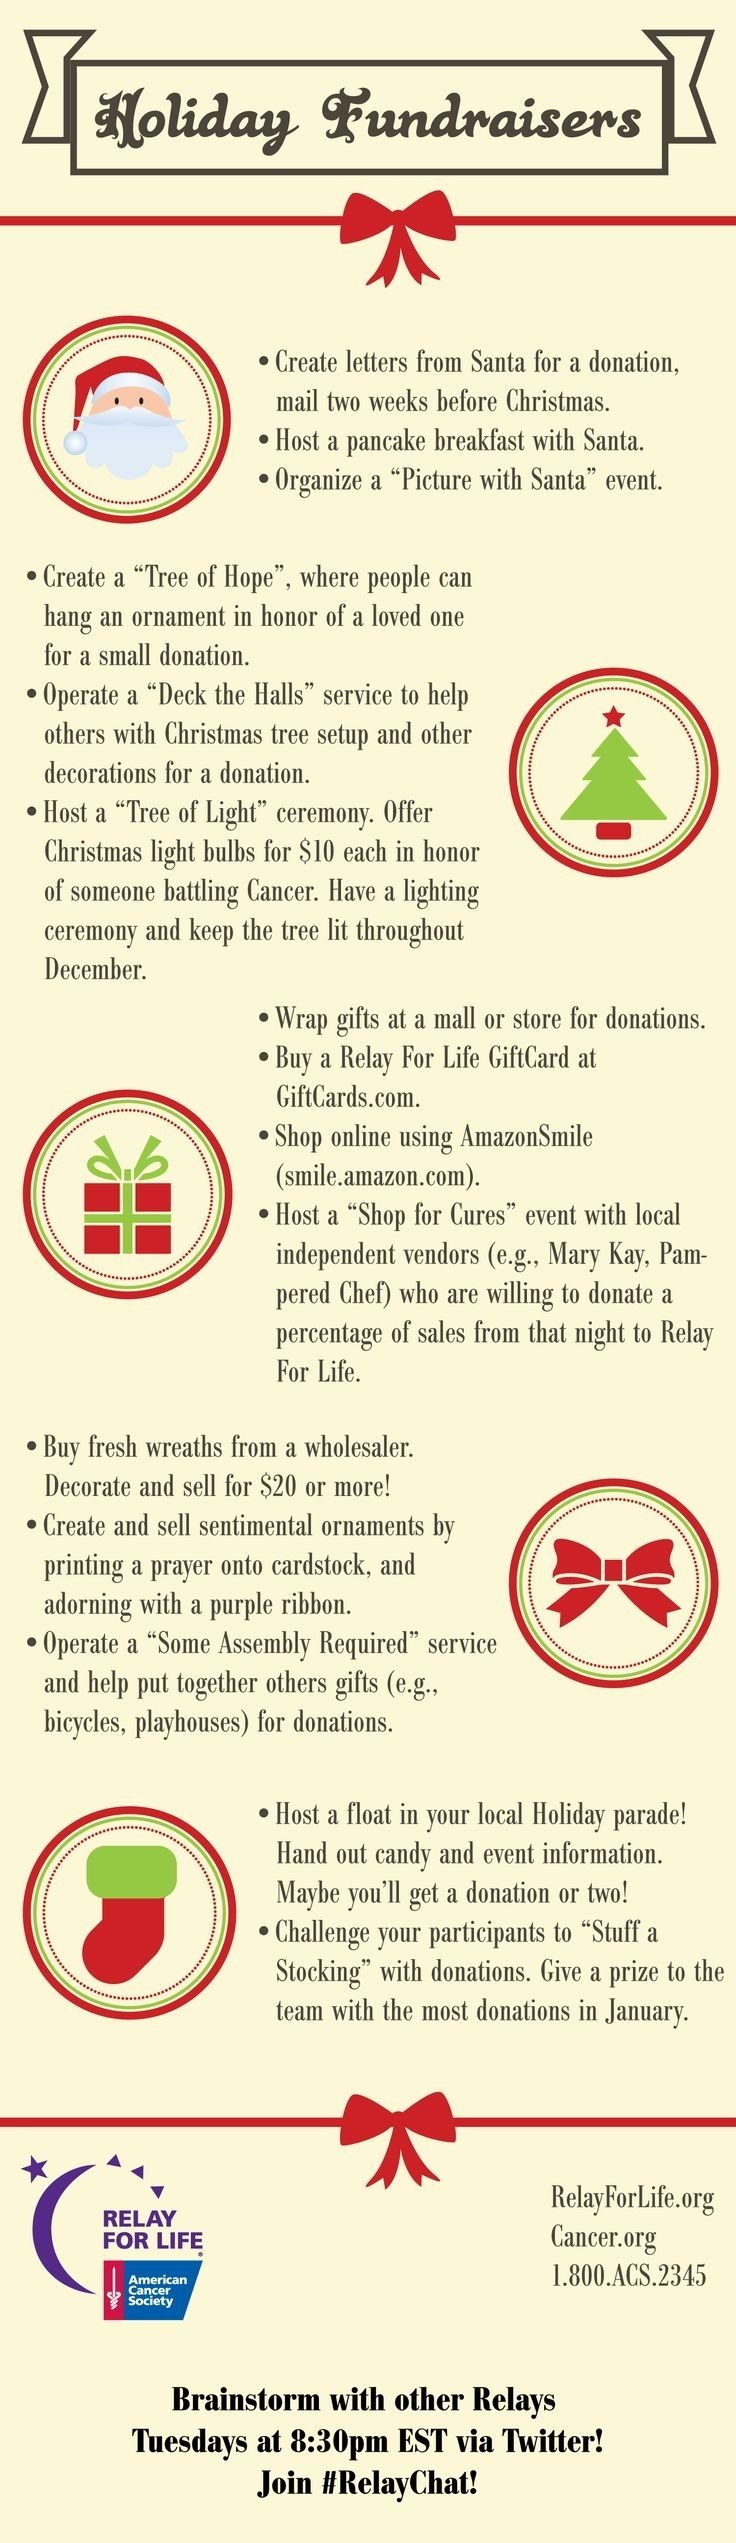 10 Lovely Good Fundraising Ideas For College 73 best student fundraising ideas images on pinterest fundraising 2021